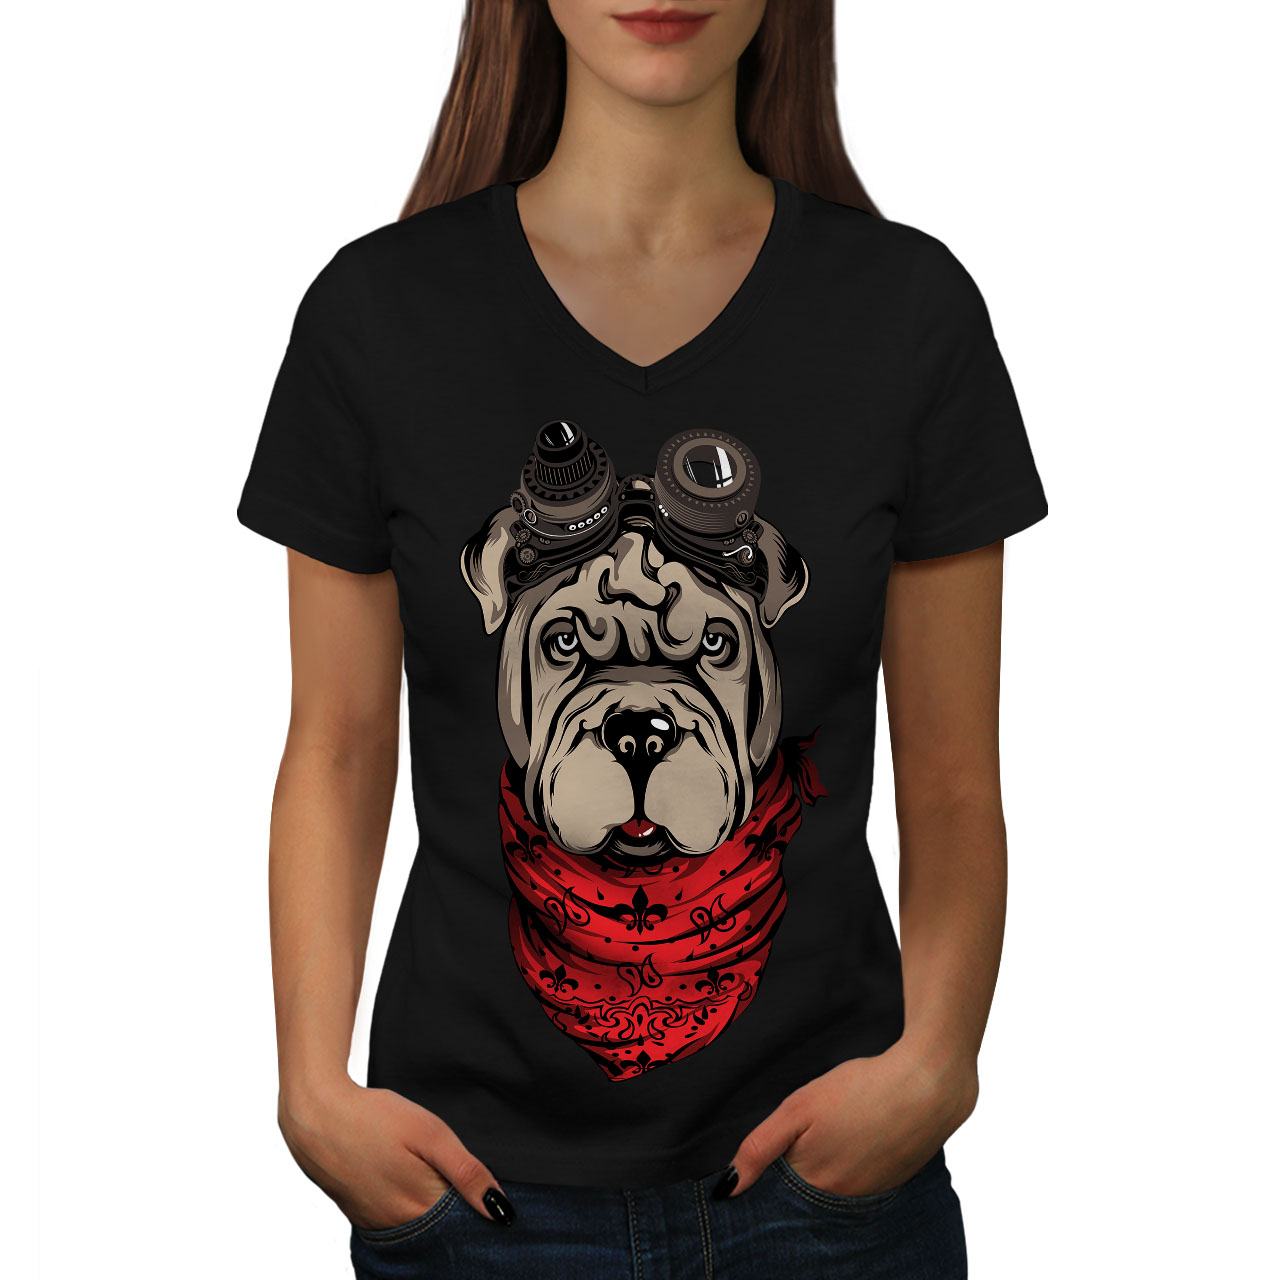 fab2d438 Cute Graphic Design T Shirts - Aztec Stone and Reclamations